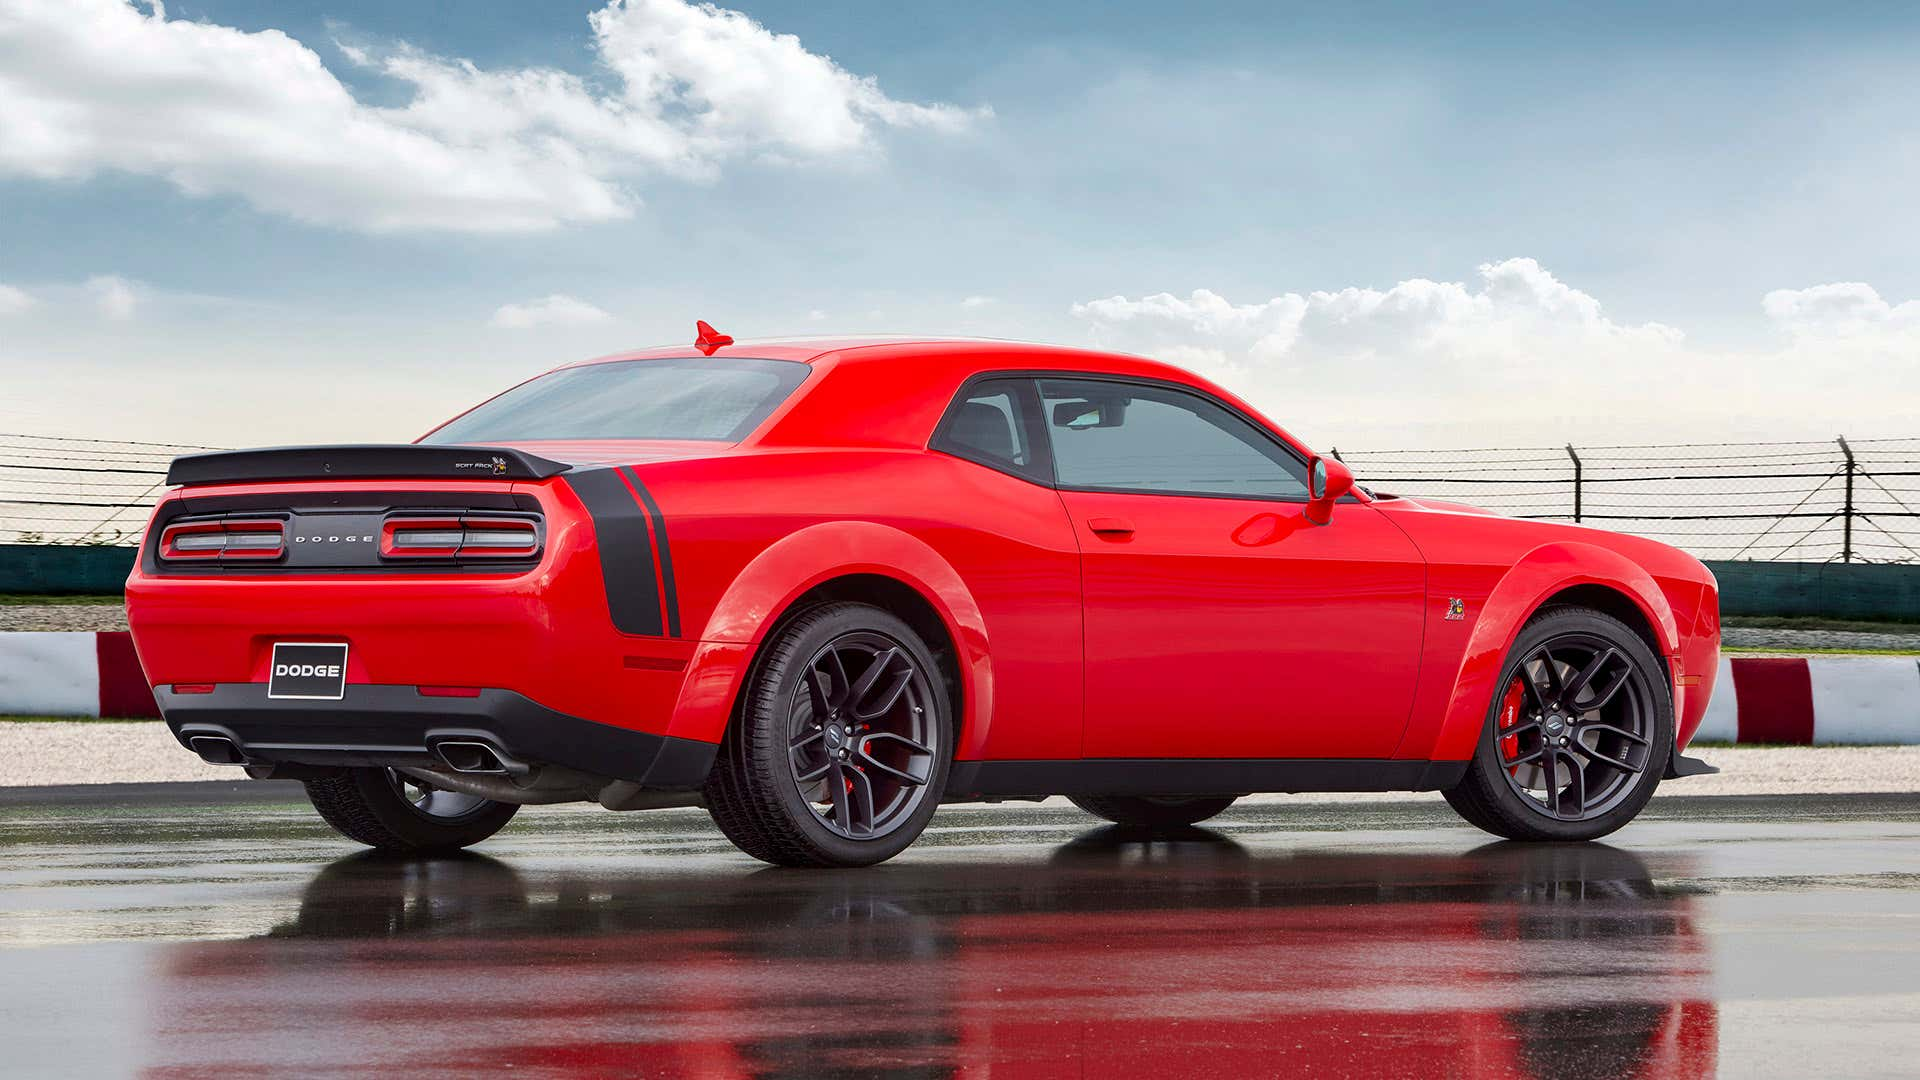 The rear end of a red 2021 Dodge Challenger Scat Pack with.